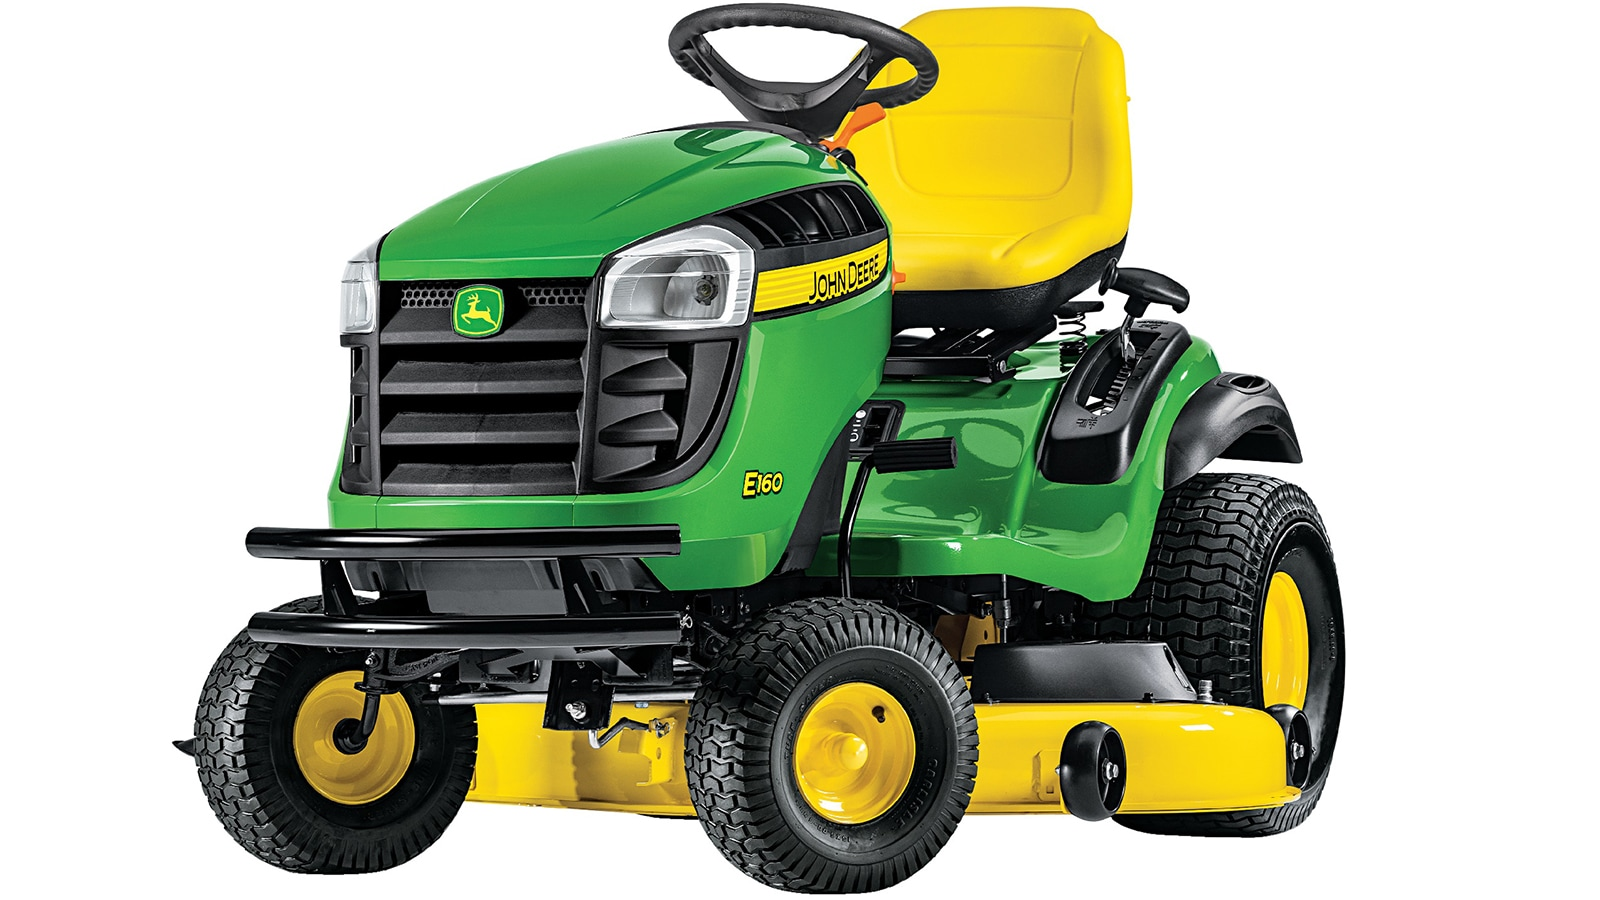 New 100 Series lawn tractors